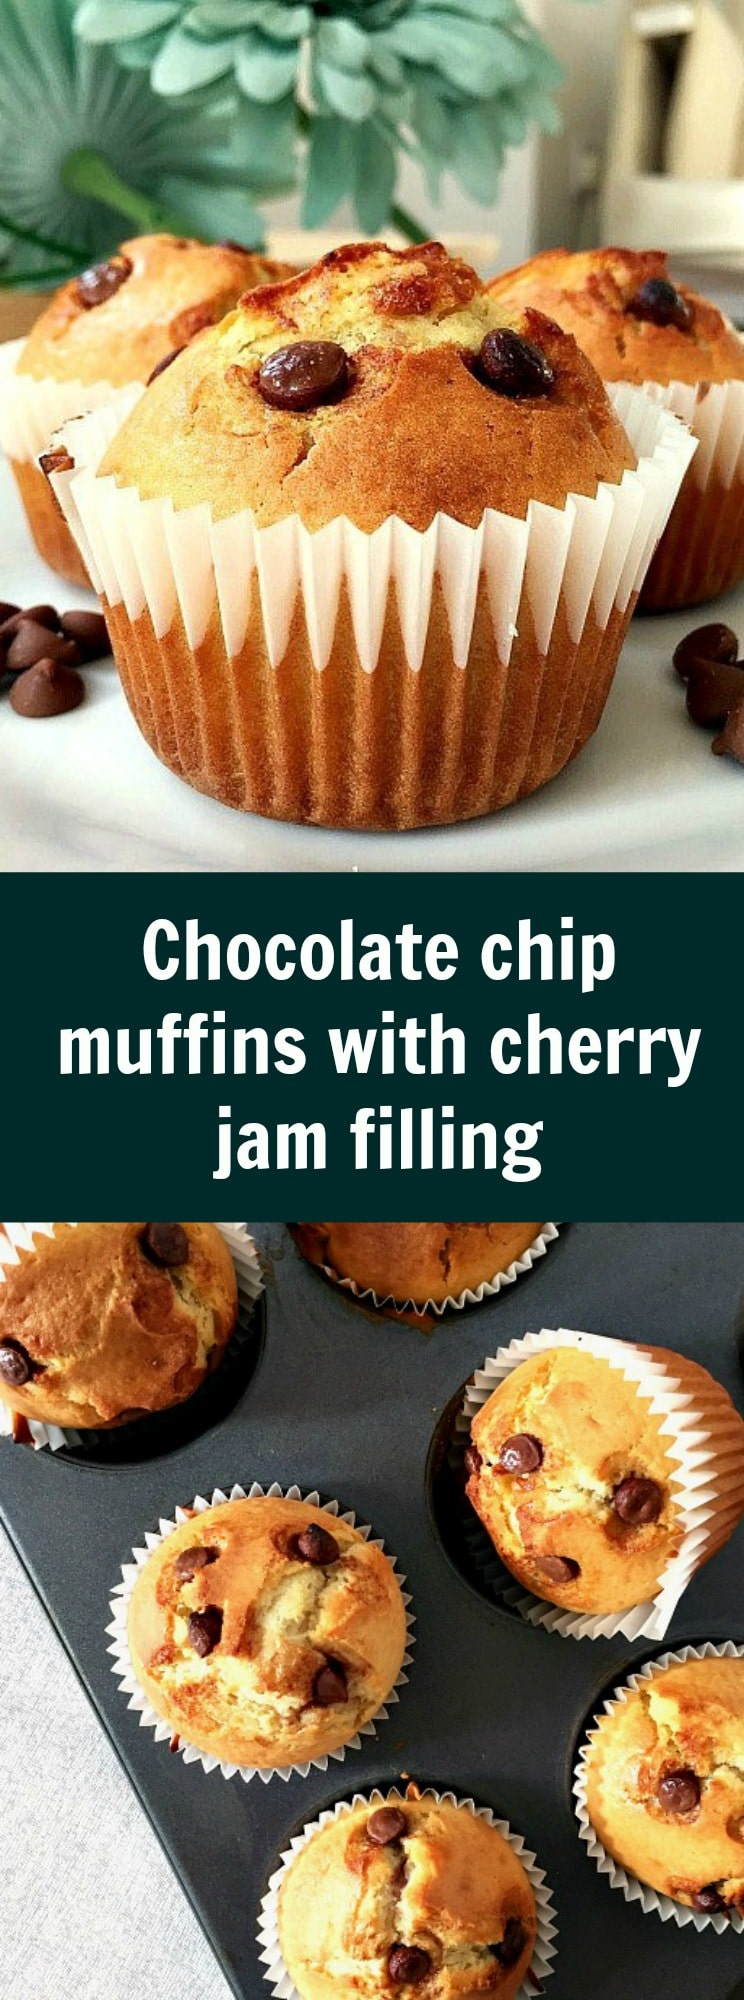 Homemade chocolate chip muffins with cherry jam filling, moist, deliciously golden, the perfect treat no matter the time of the day.